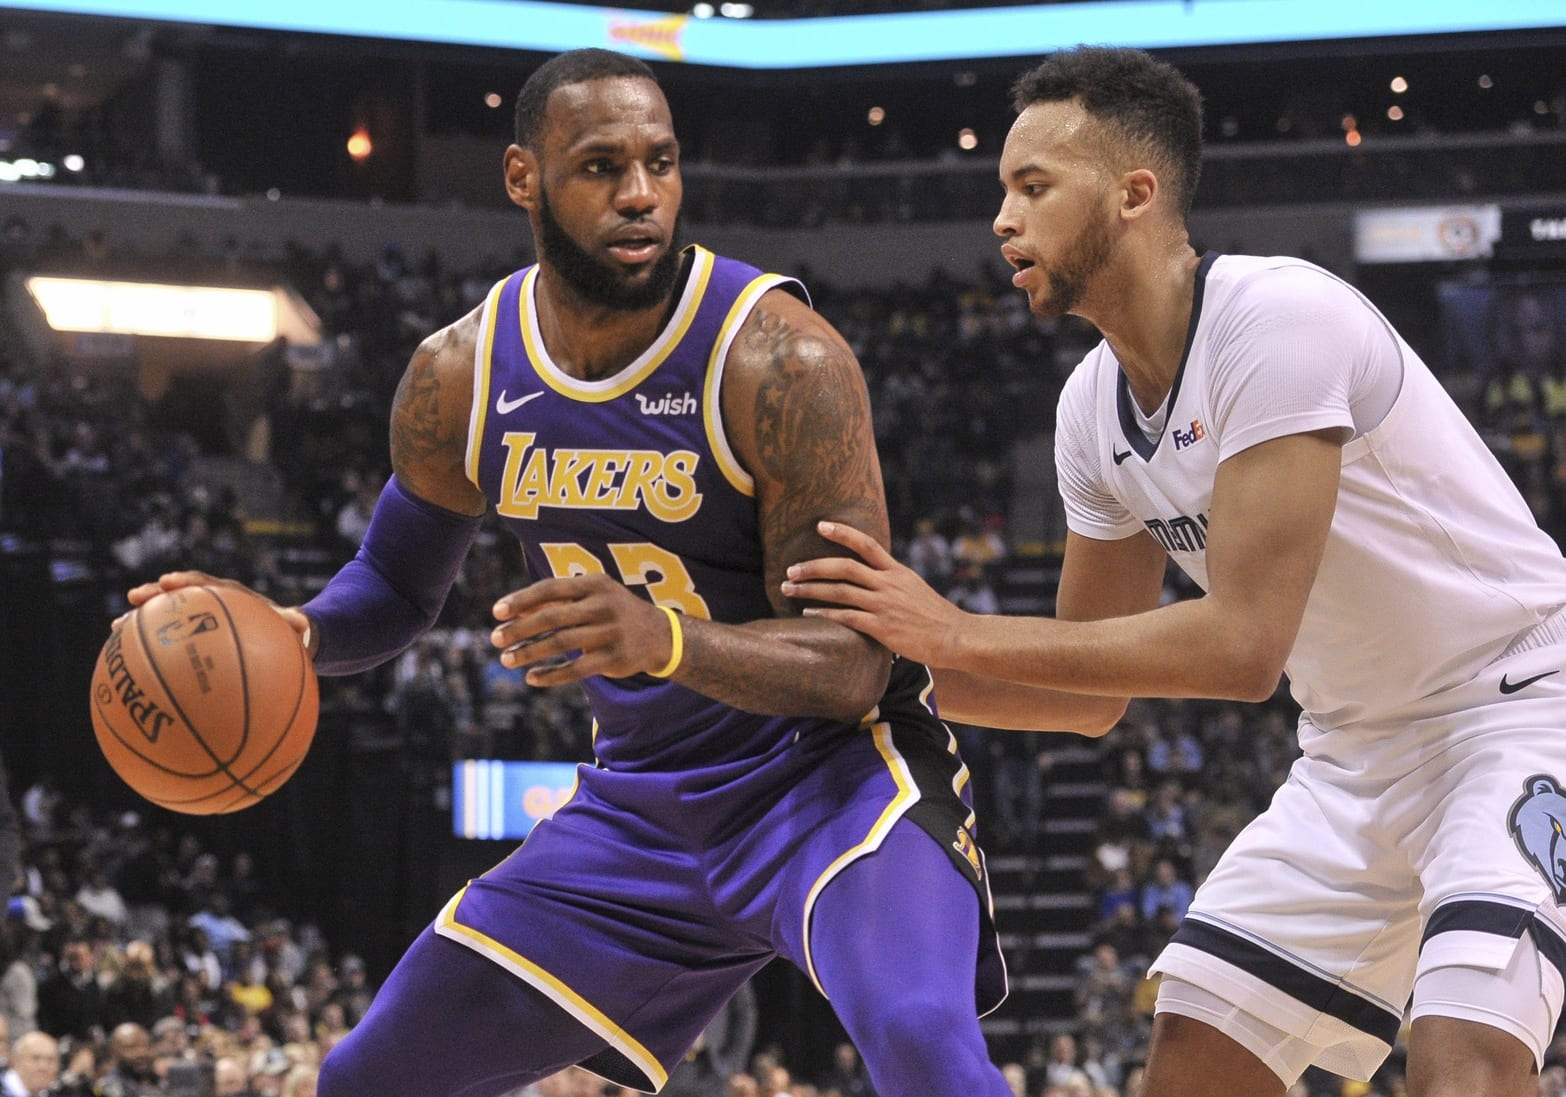 ee3f188e1cb3 Lakers Highlights  LeBron James Leads Six Players In Double Figures As L.A.  Mauls Grizzlies